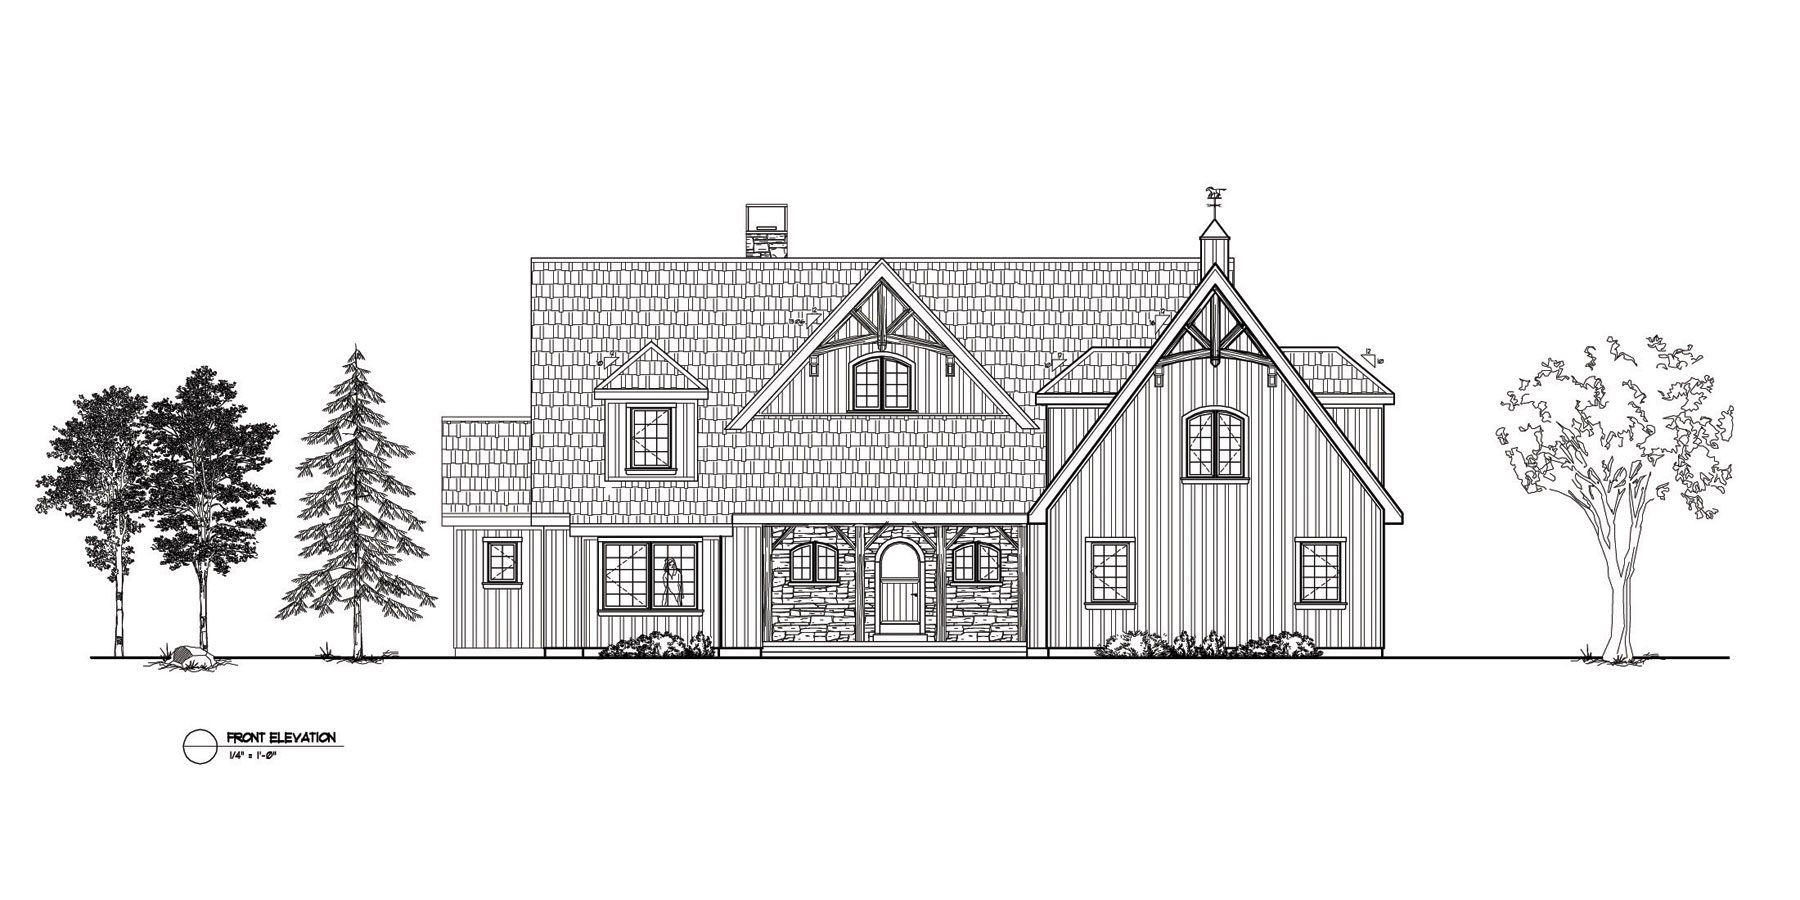 Normerica Timber Frames, House Plan, The Brennan 3576, Front Elevation